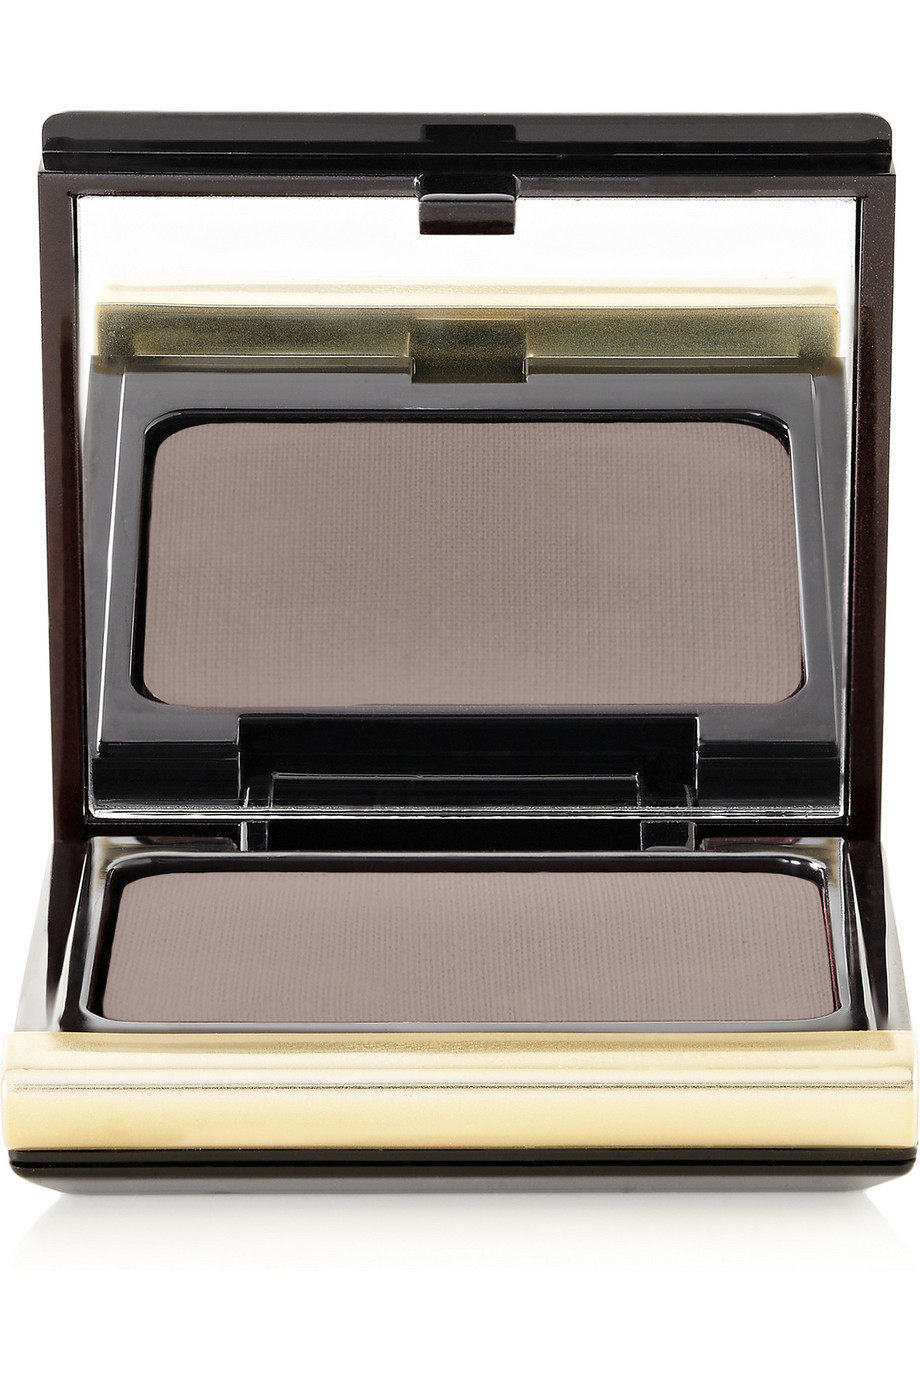 The Matte Eyeshadow Single - Taupey Gray No. 105, by Kevyn Aucoin